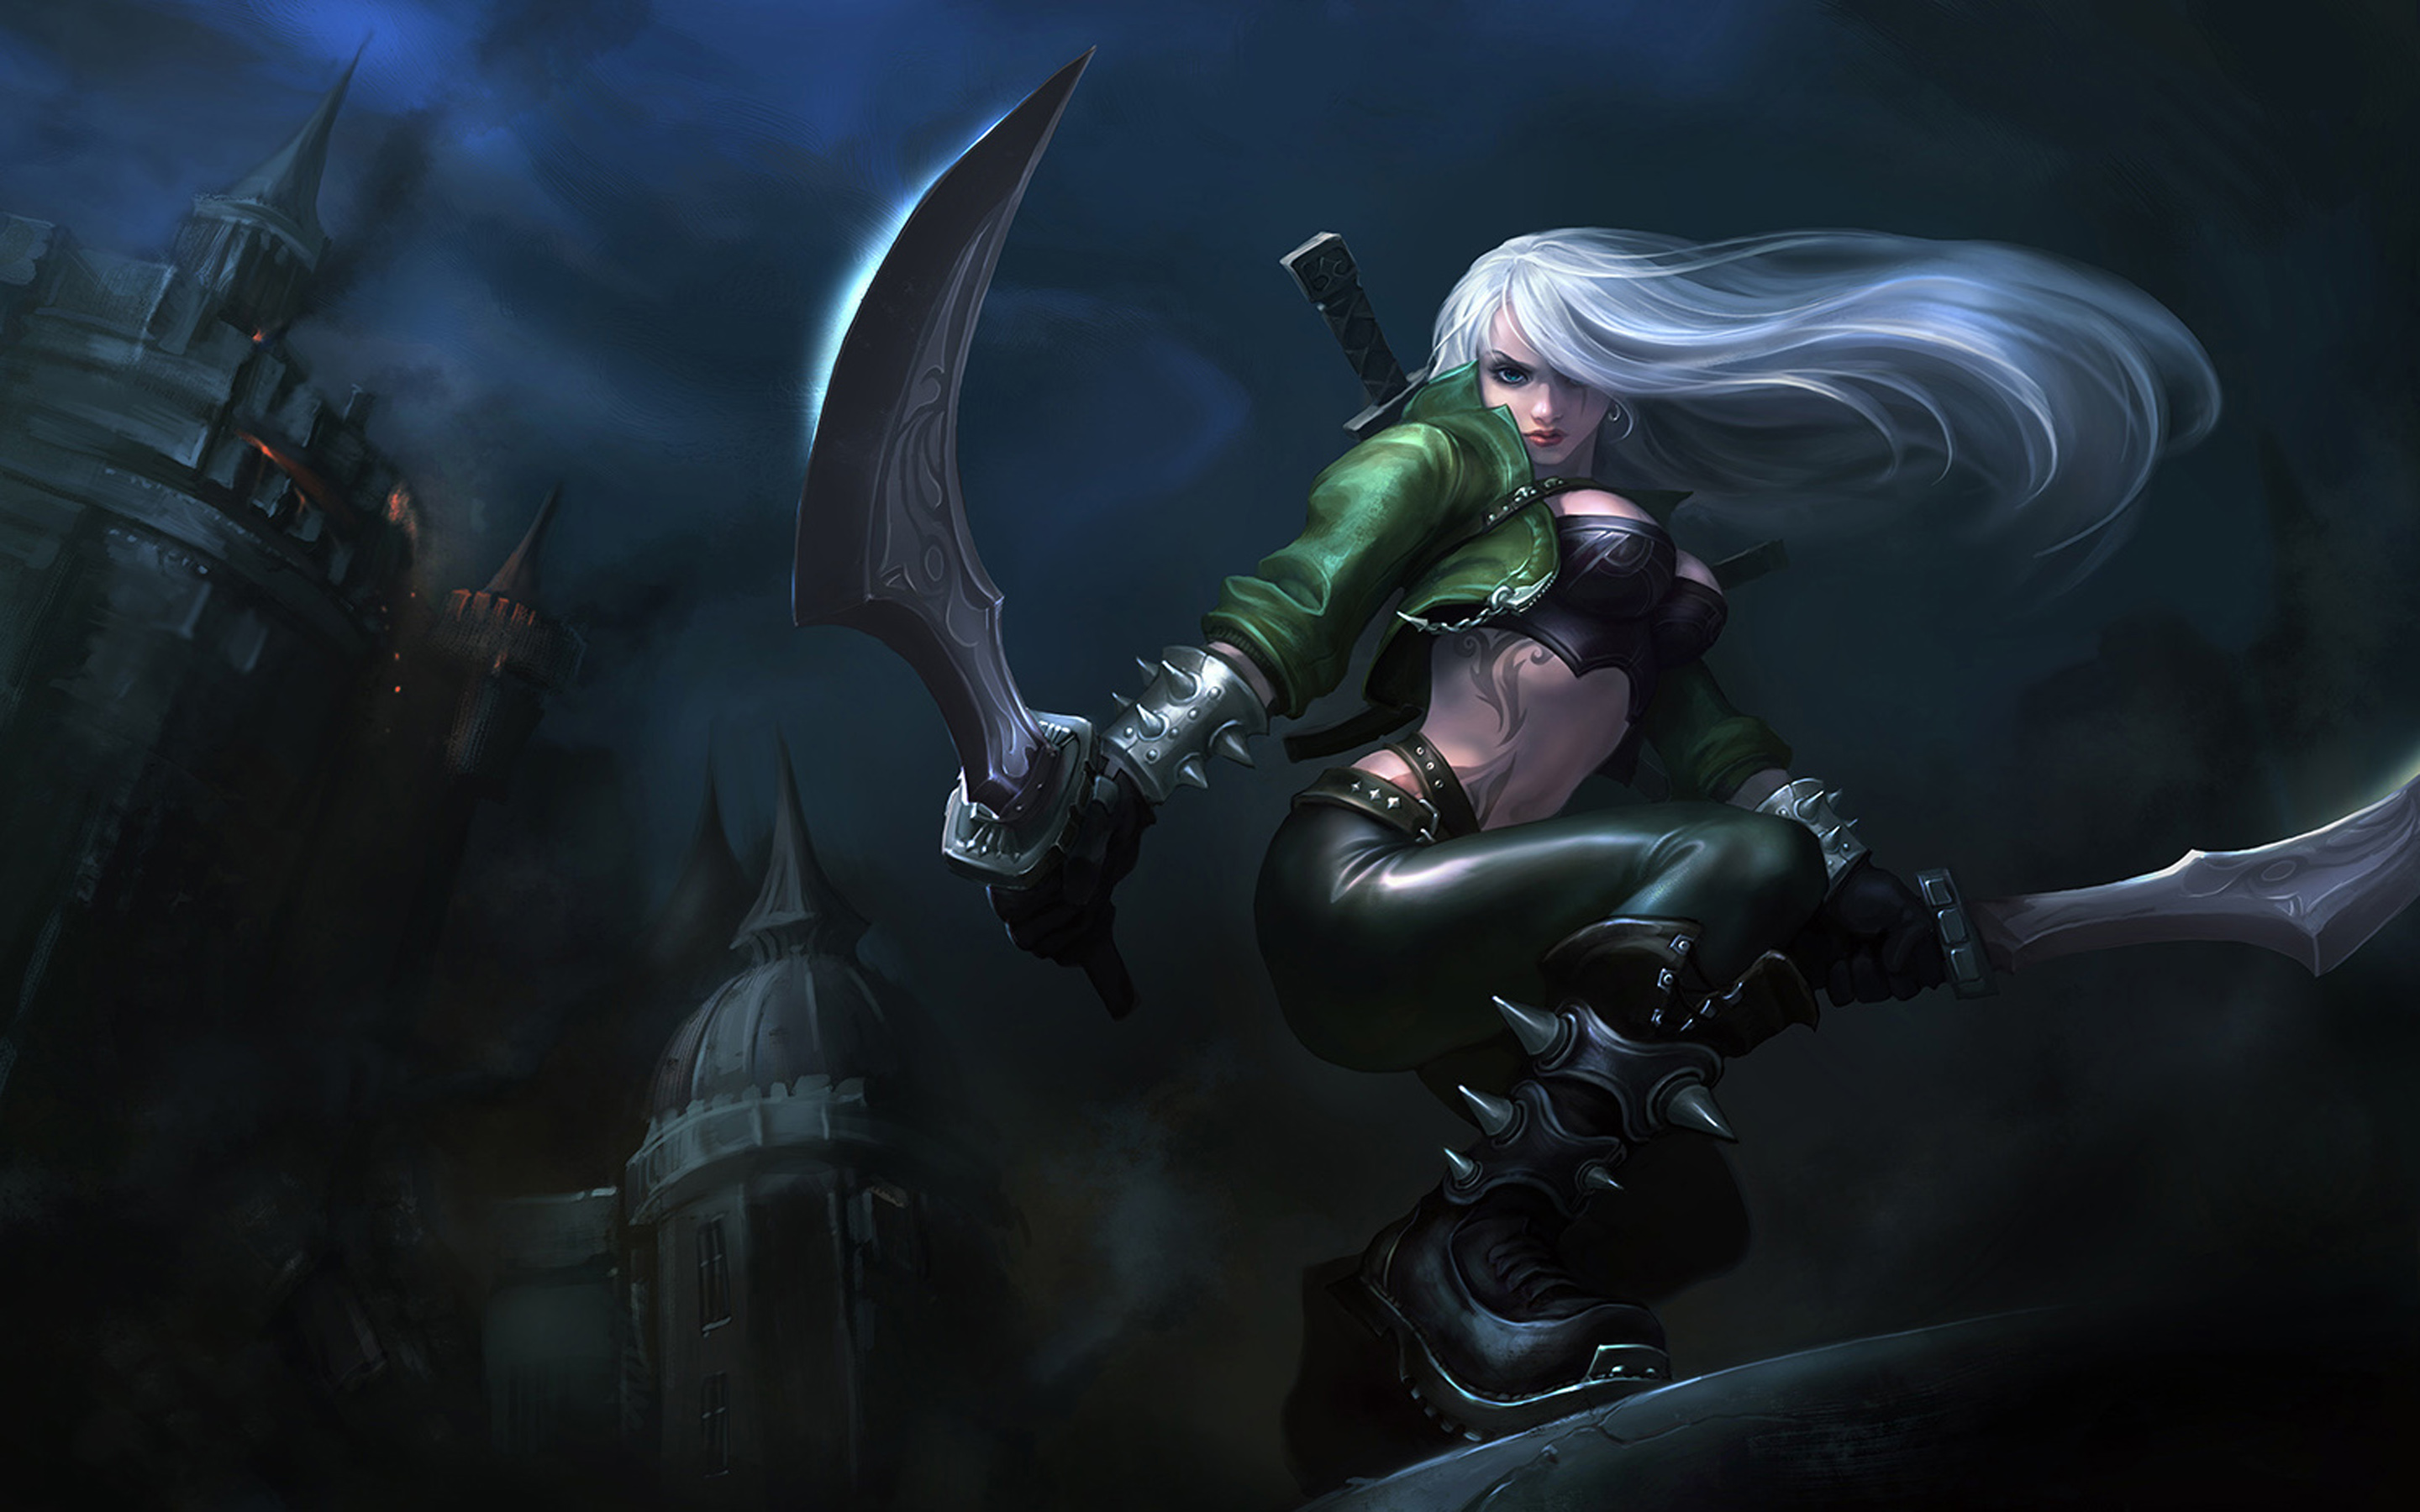 League Of Legends Katarina Girl White Hair Sword Castle Wallpaper HD For Mobile Phone 2880x1800